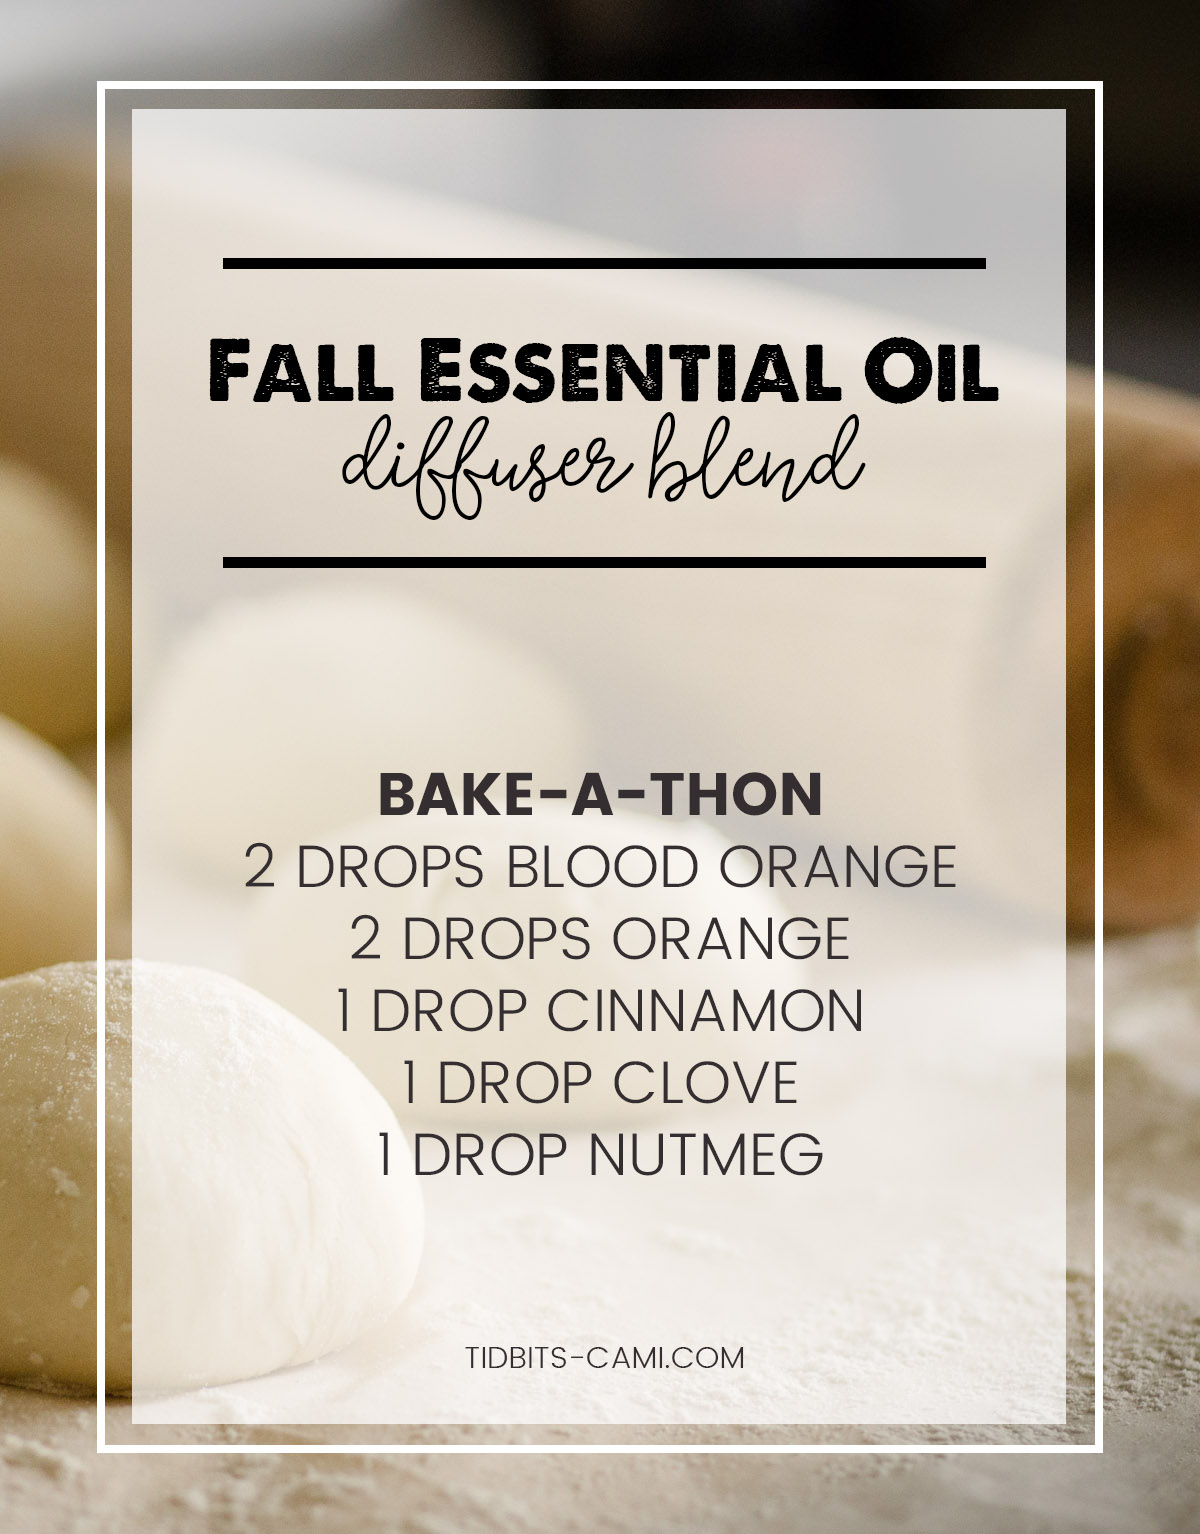 bake a thon essential oil diffuser blend